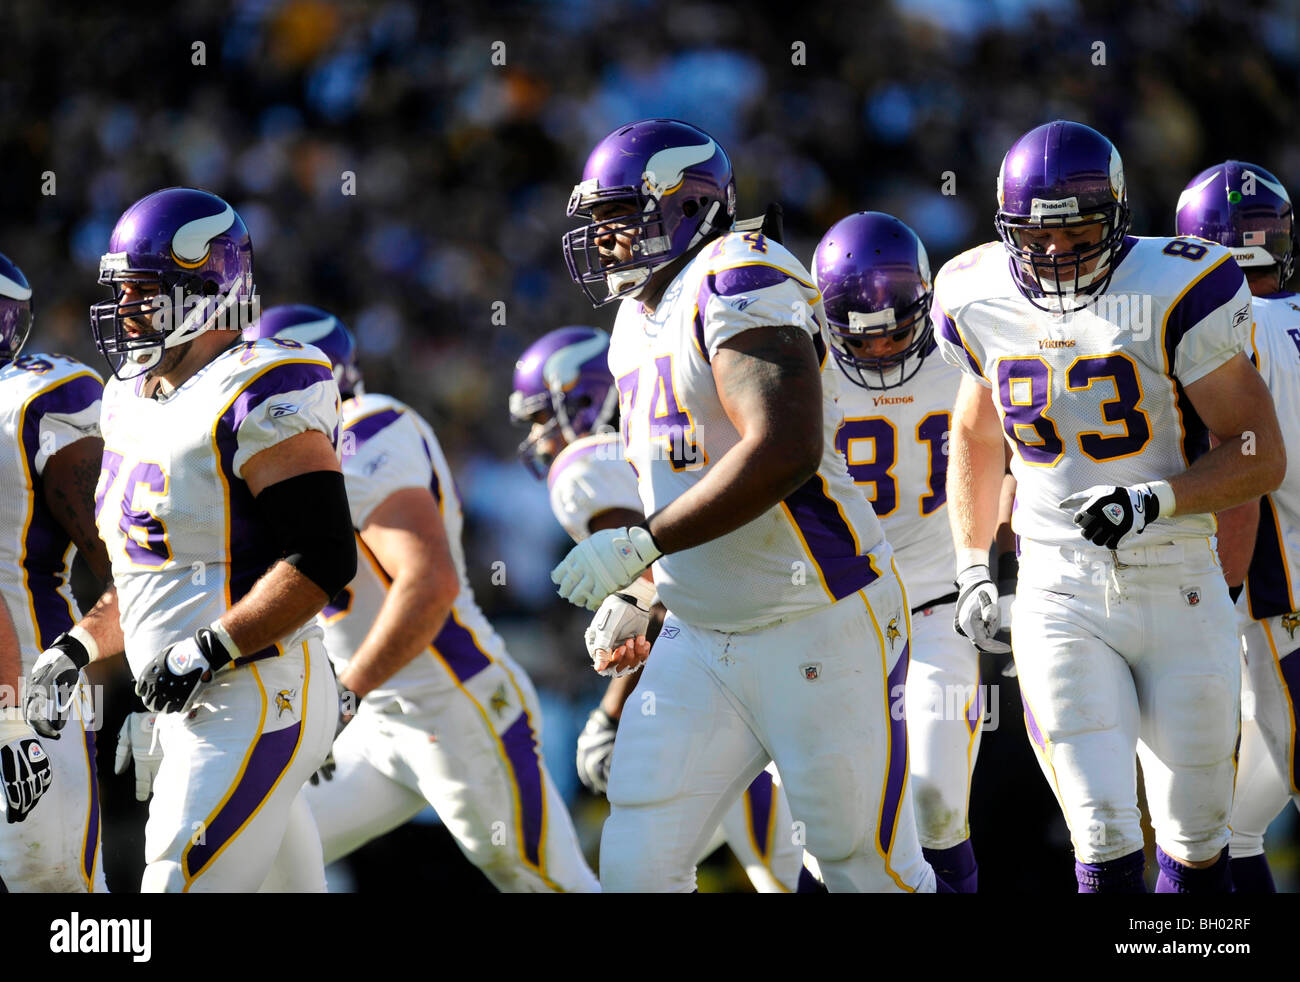 The Minnesota Vikings offense walk to the line of scrimmage - Stock Image f9ef207cb